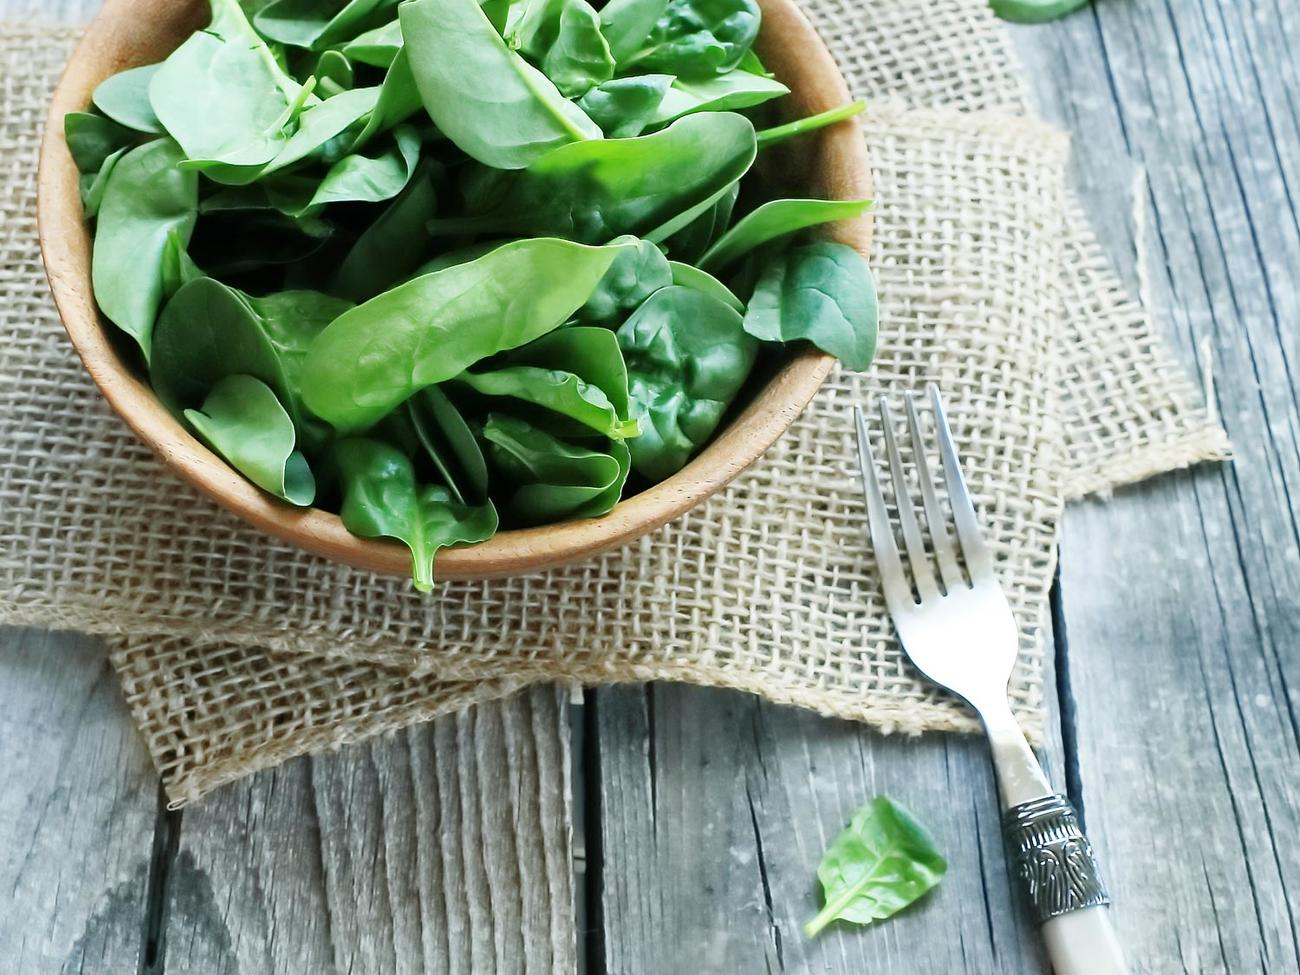 Protein: 5g